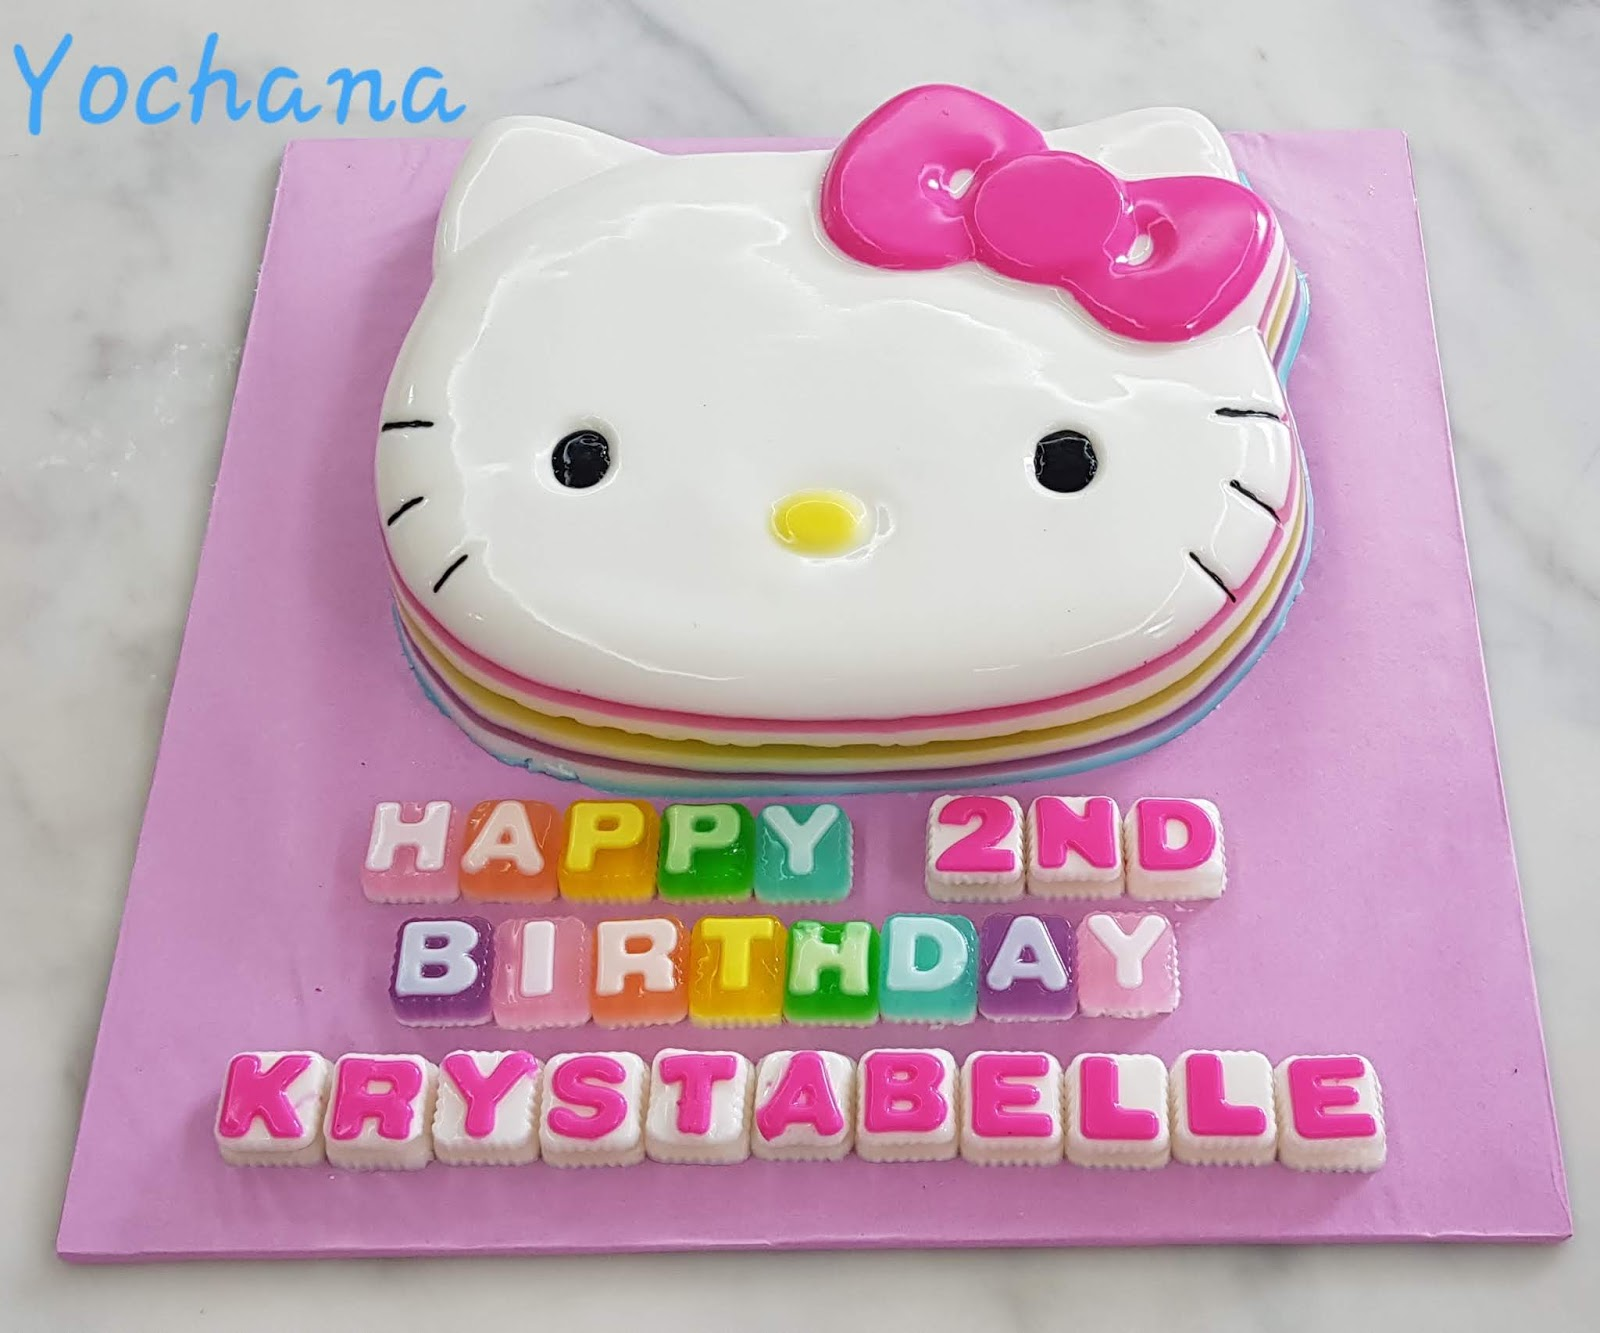 Happy 2nd Birthday Krystabelle Posted By Aunty Yochana At 723 Pm